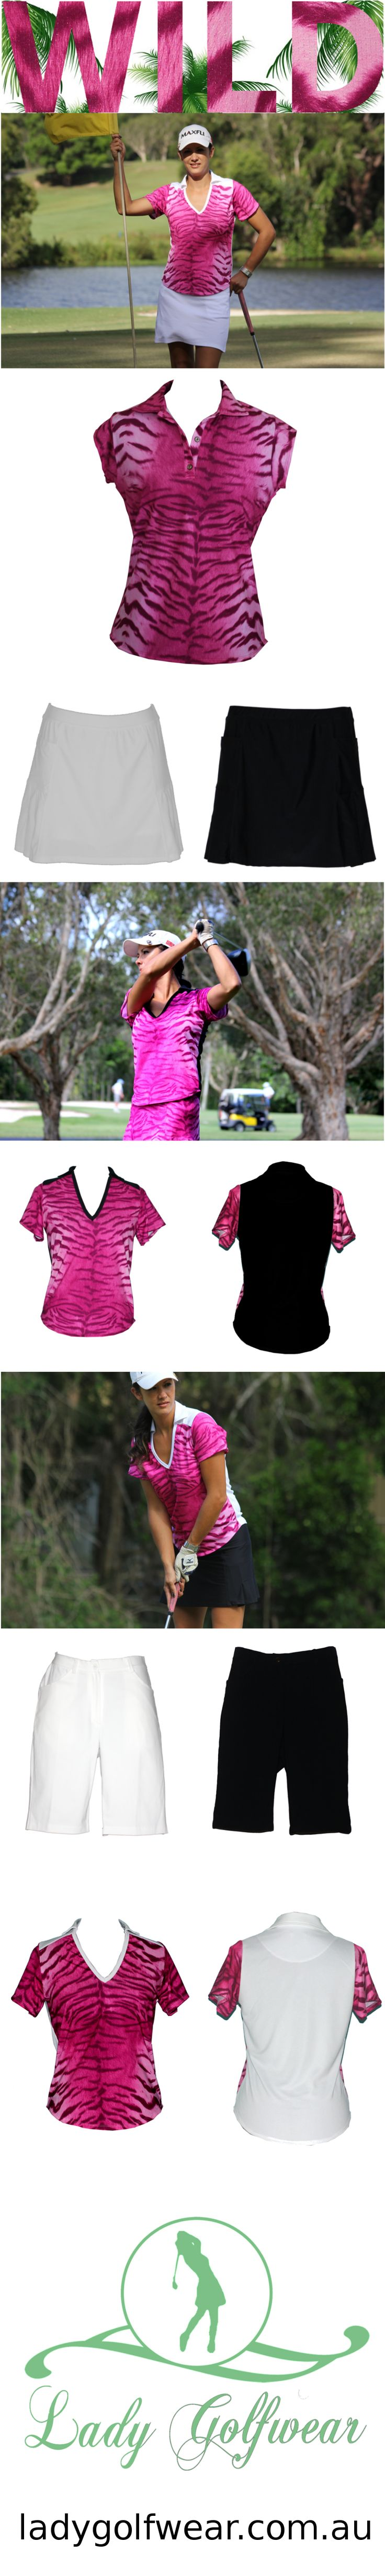 Women's golf clothes, made in Australia from high quality sports fabrics. Wild collection now on sale! #freeshipping #womensgolfclothes #golfclothes #madeinaustralia #golf #sale